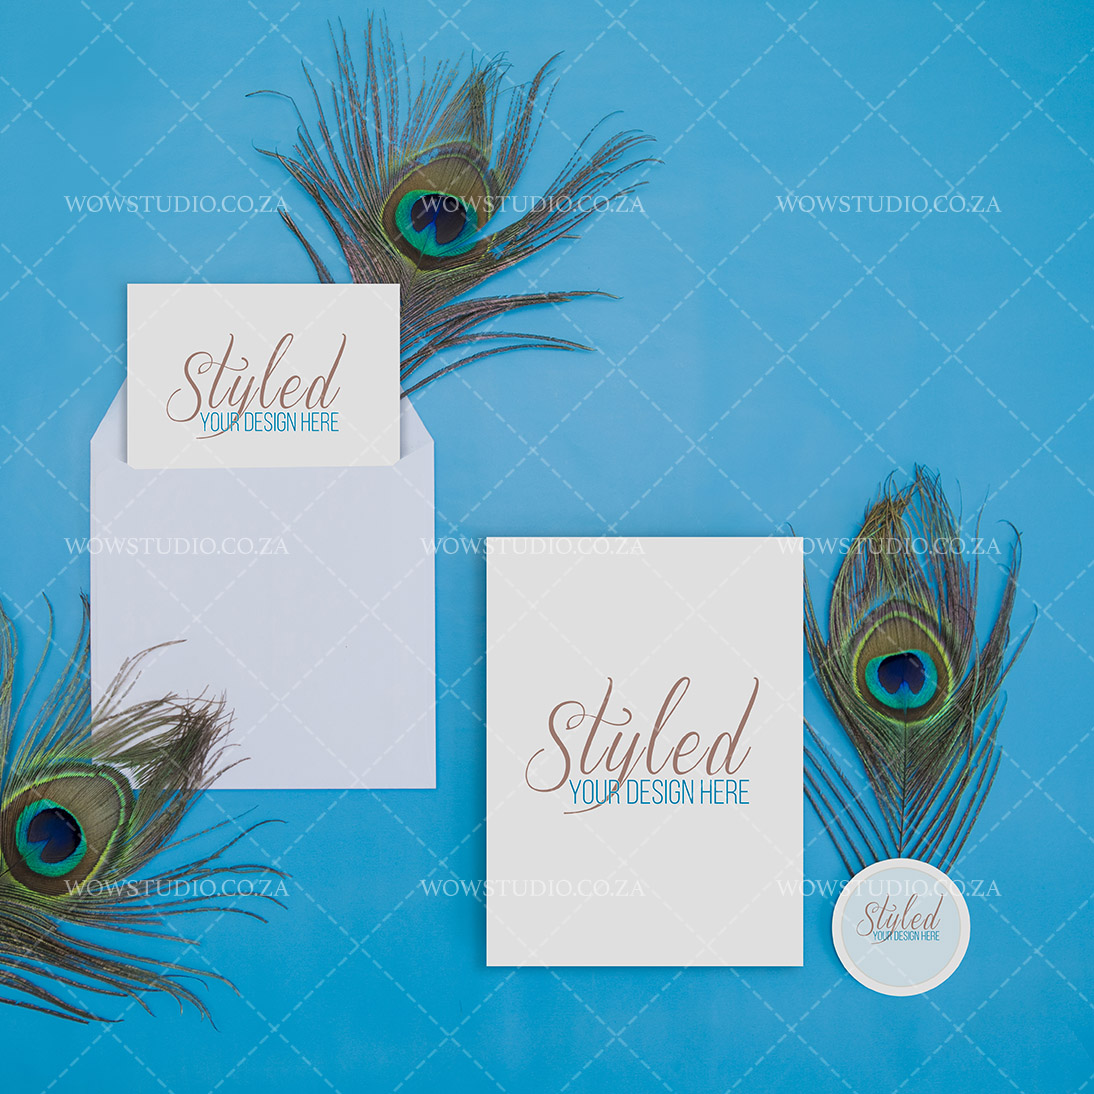 WOW Creative Design Studio Wedding Invitation Design